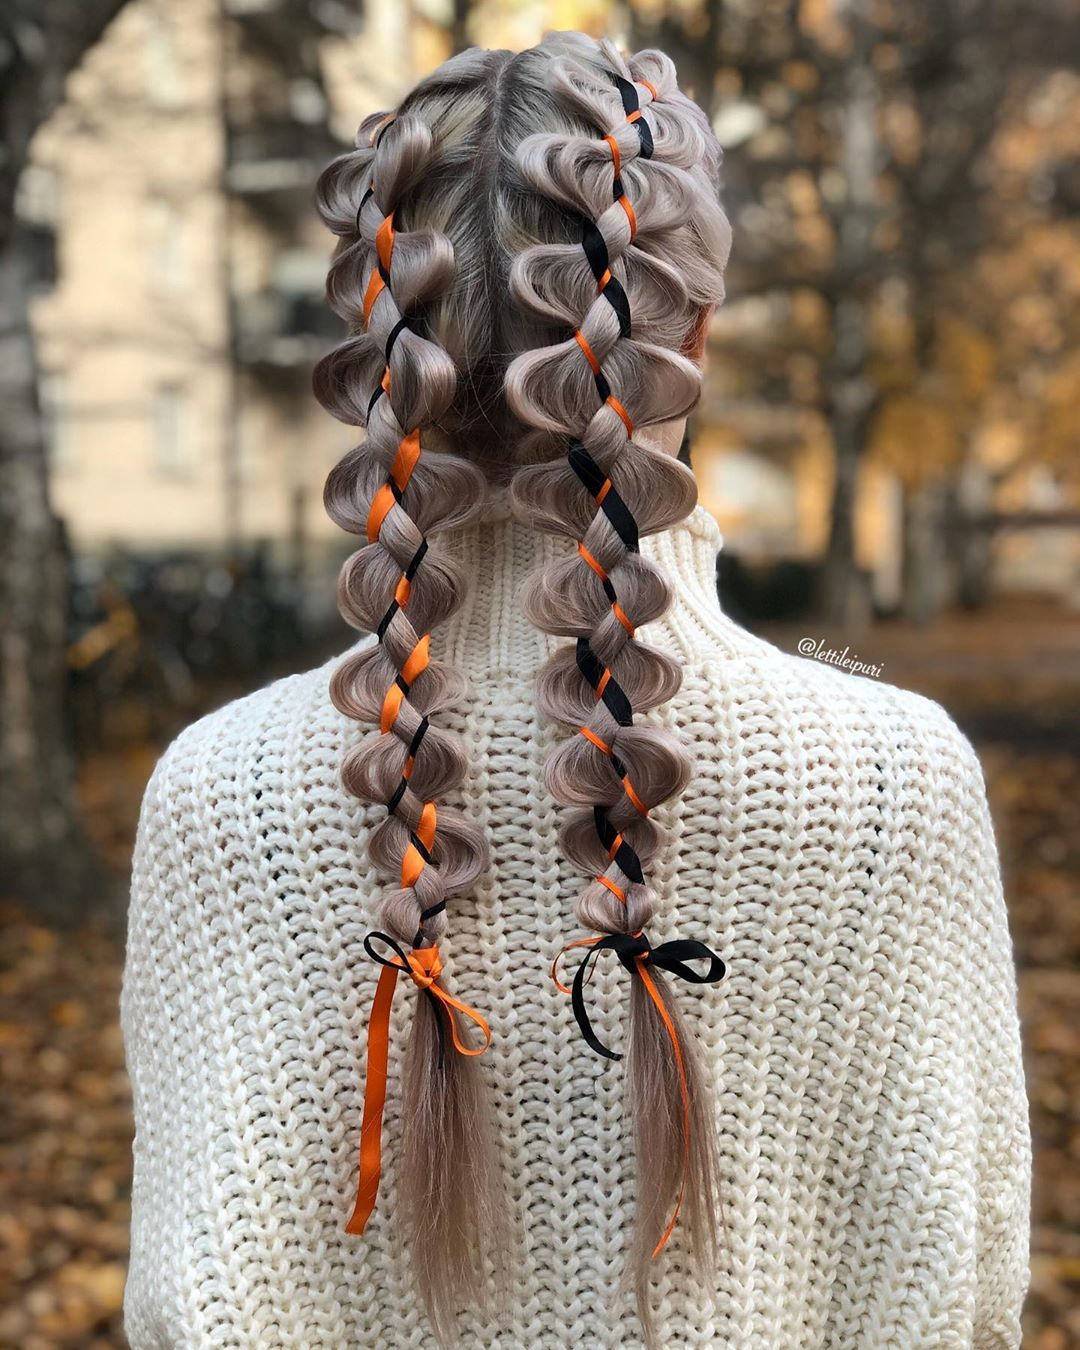 39 Halloween Hairstyles Ideas Make You Become The Focus Of Attention Life Tillage Cheveux Pour Halloween Coiffure Halloween Tresse 4 Brins